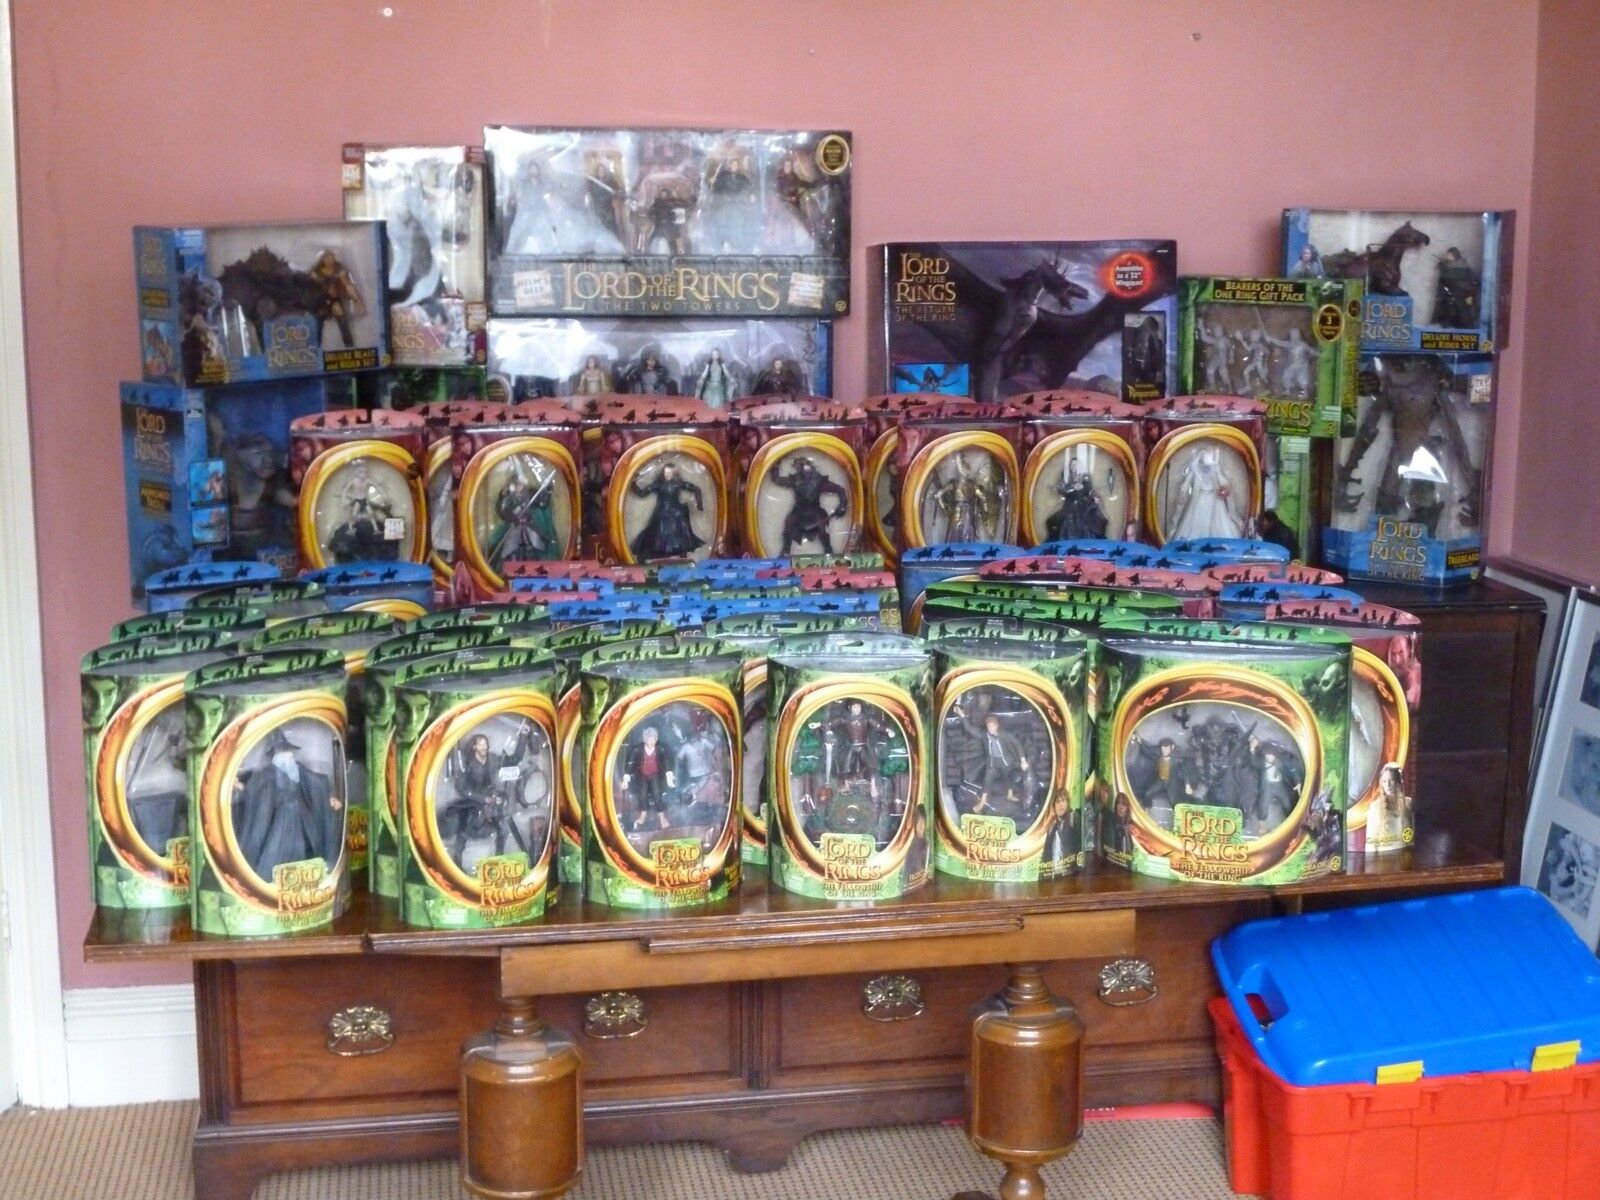 Lord Of The Rings Figure Collection - New In Boxes Over 90 Pieces All 3 films